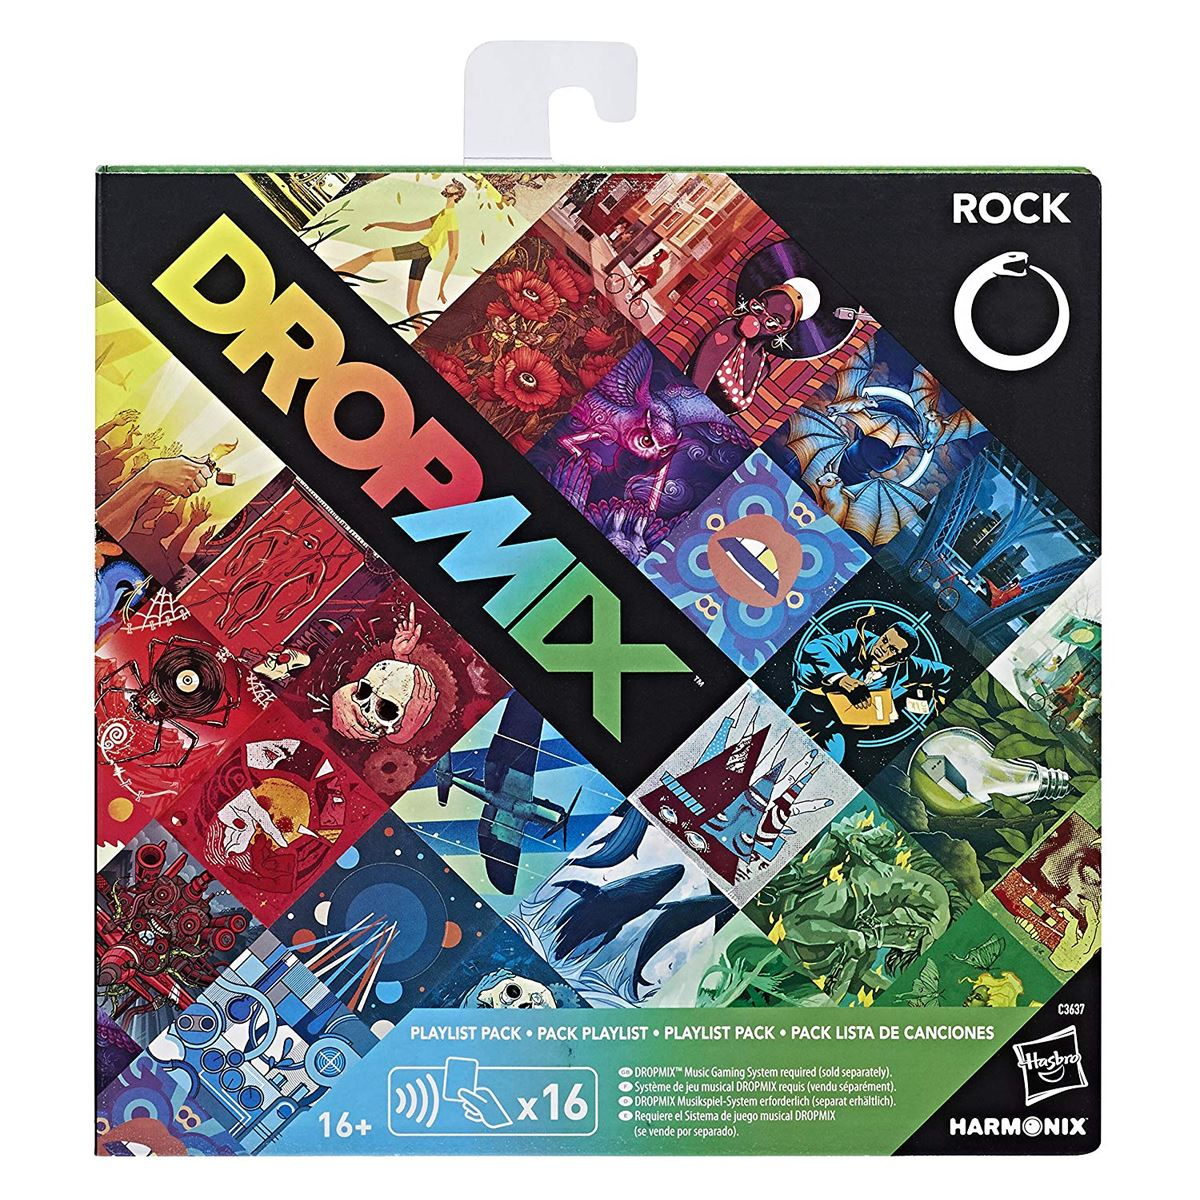 New-Dropmix-Rock-Pop-Hip-Hop-Or-Electronic-Playlist-Card-Pack-Hasbro-Official miniatuur 8